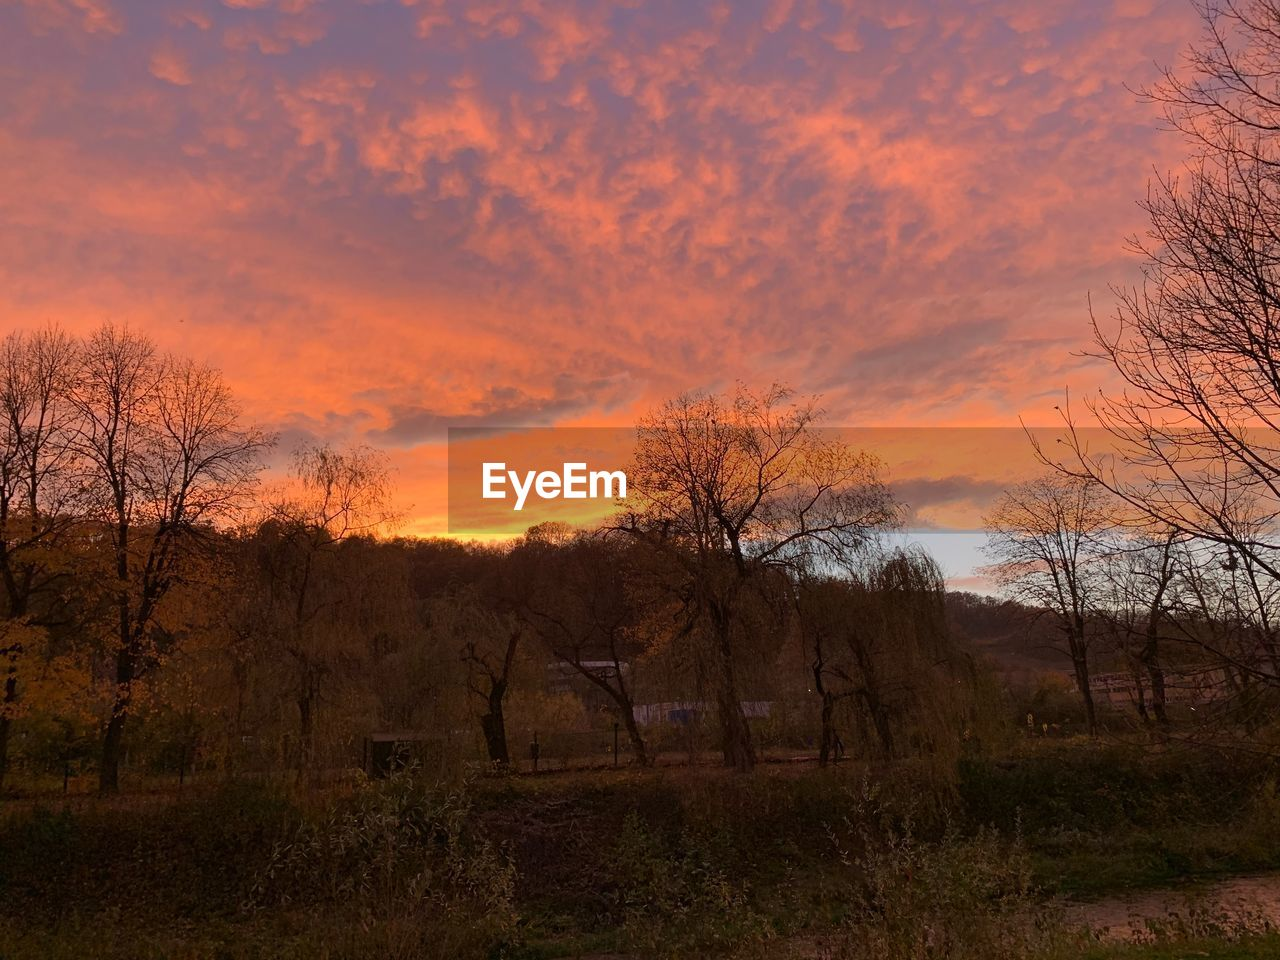 sunset, tree, sky, tranquil scene, plant, beauty in nature, tranquility, cloud - sky, scenics - nature, orange color, field, no people, land, non-urban scene, nature, bare tree, environment, landscape, growth, idyllic, outdoors